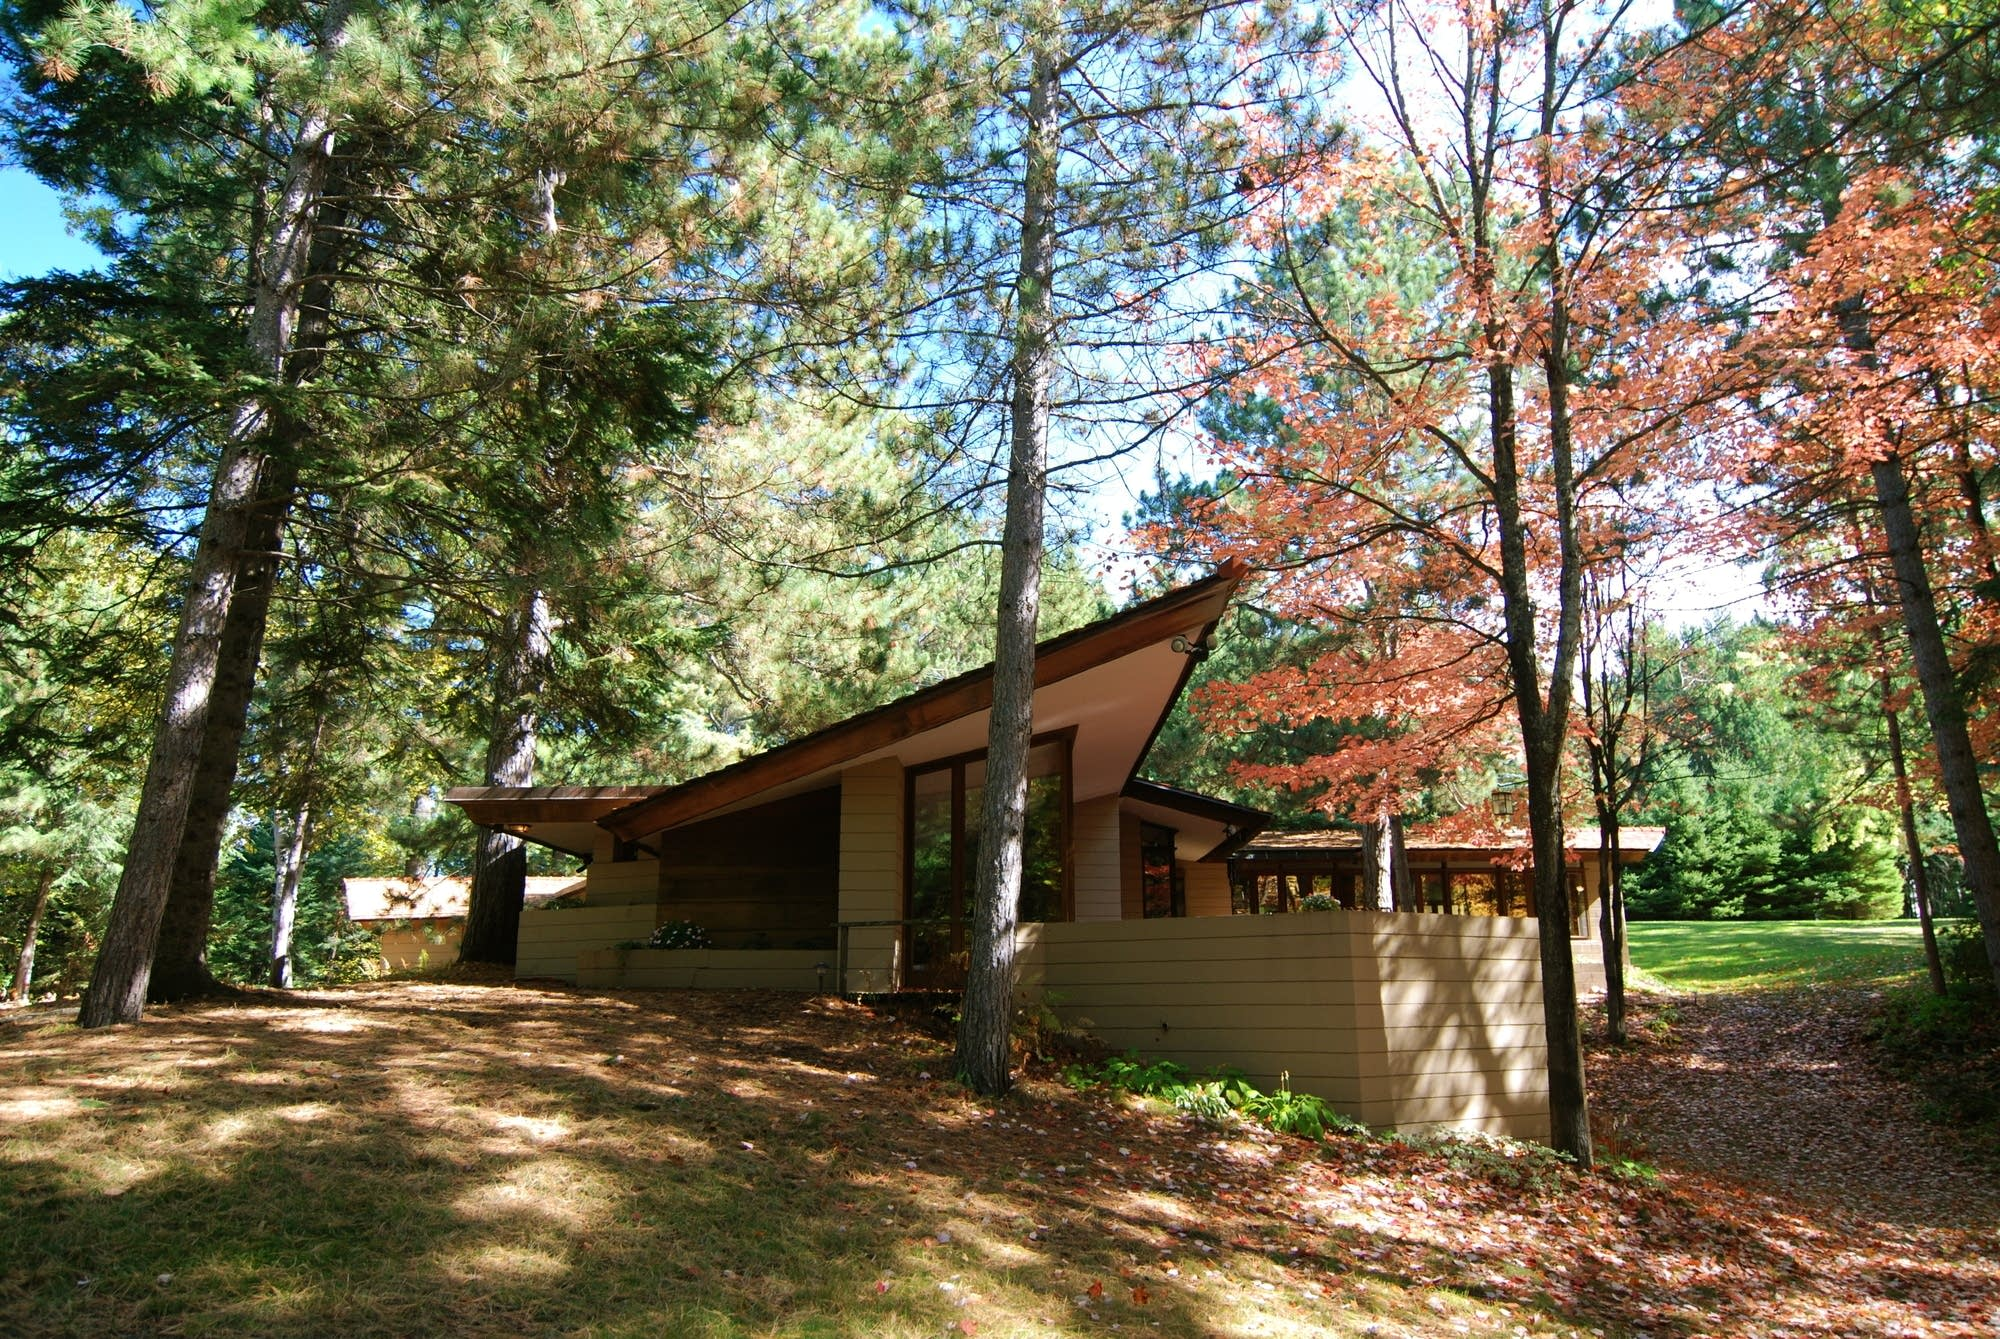 Frank lloyd wright designed house in minn moved piece by for Building a house in minnesota